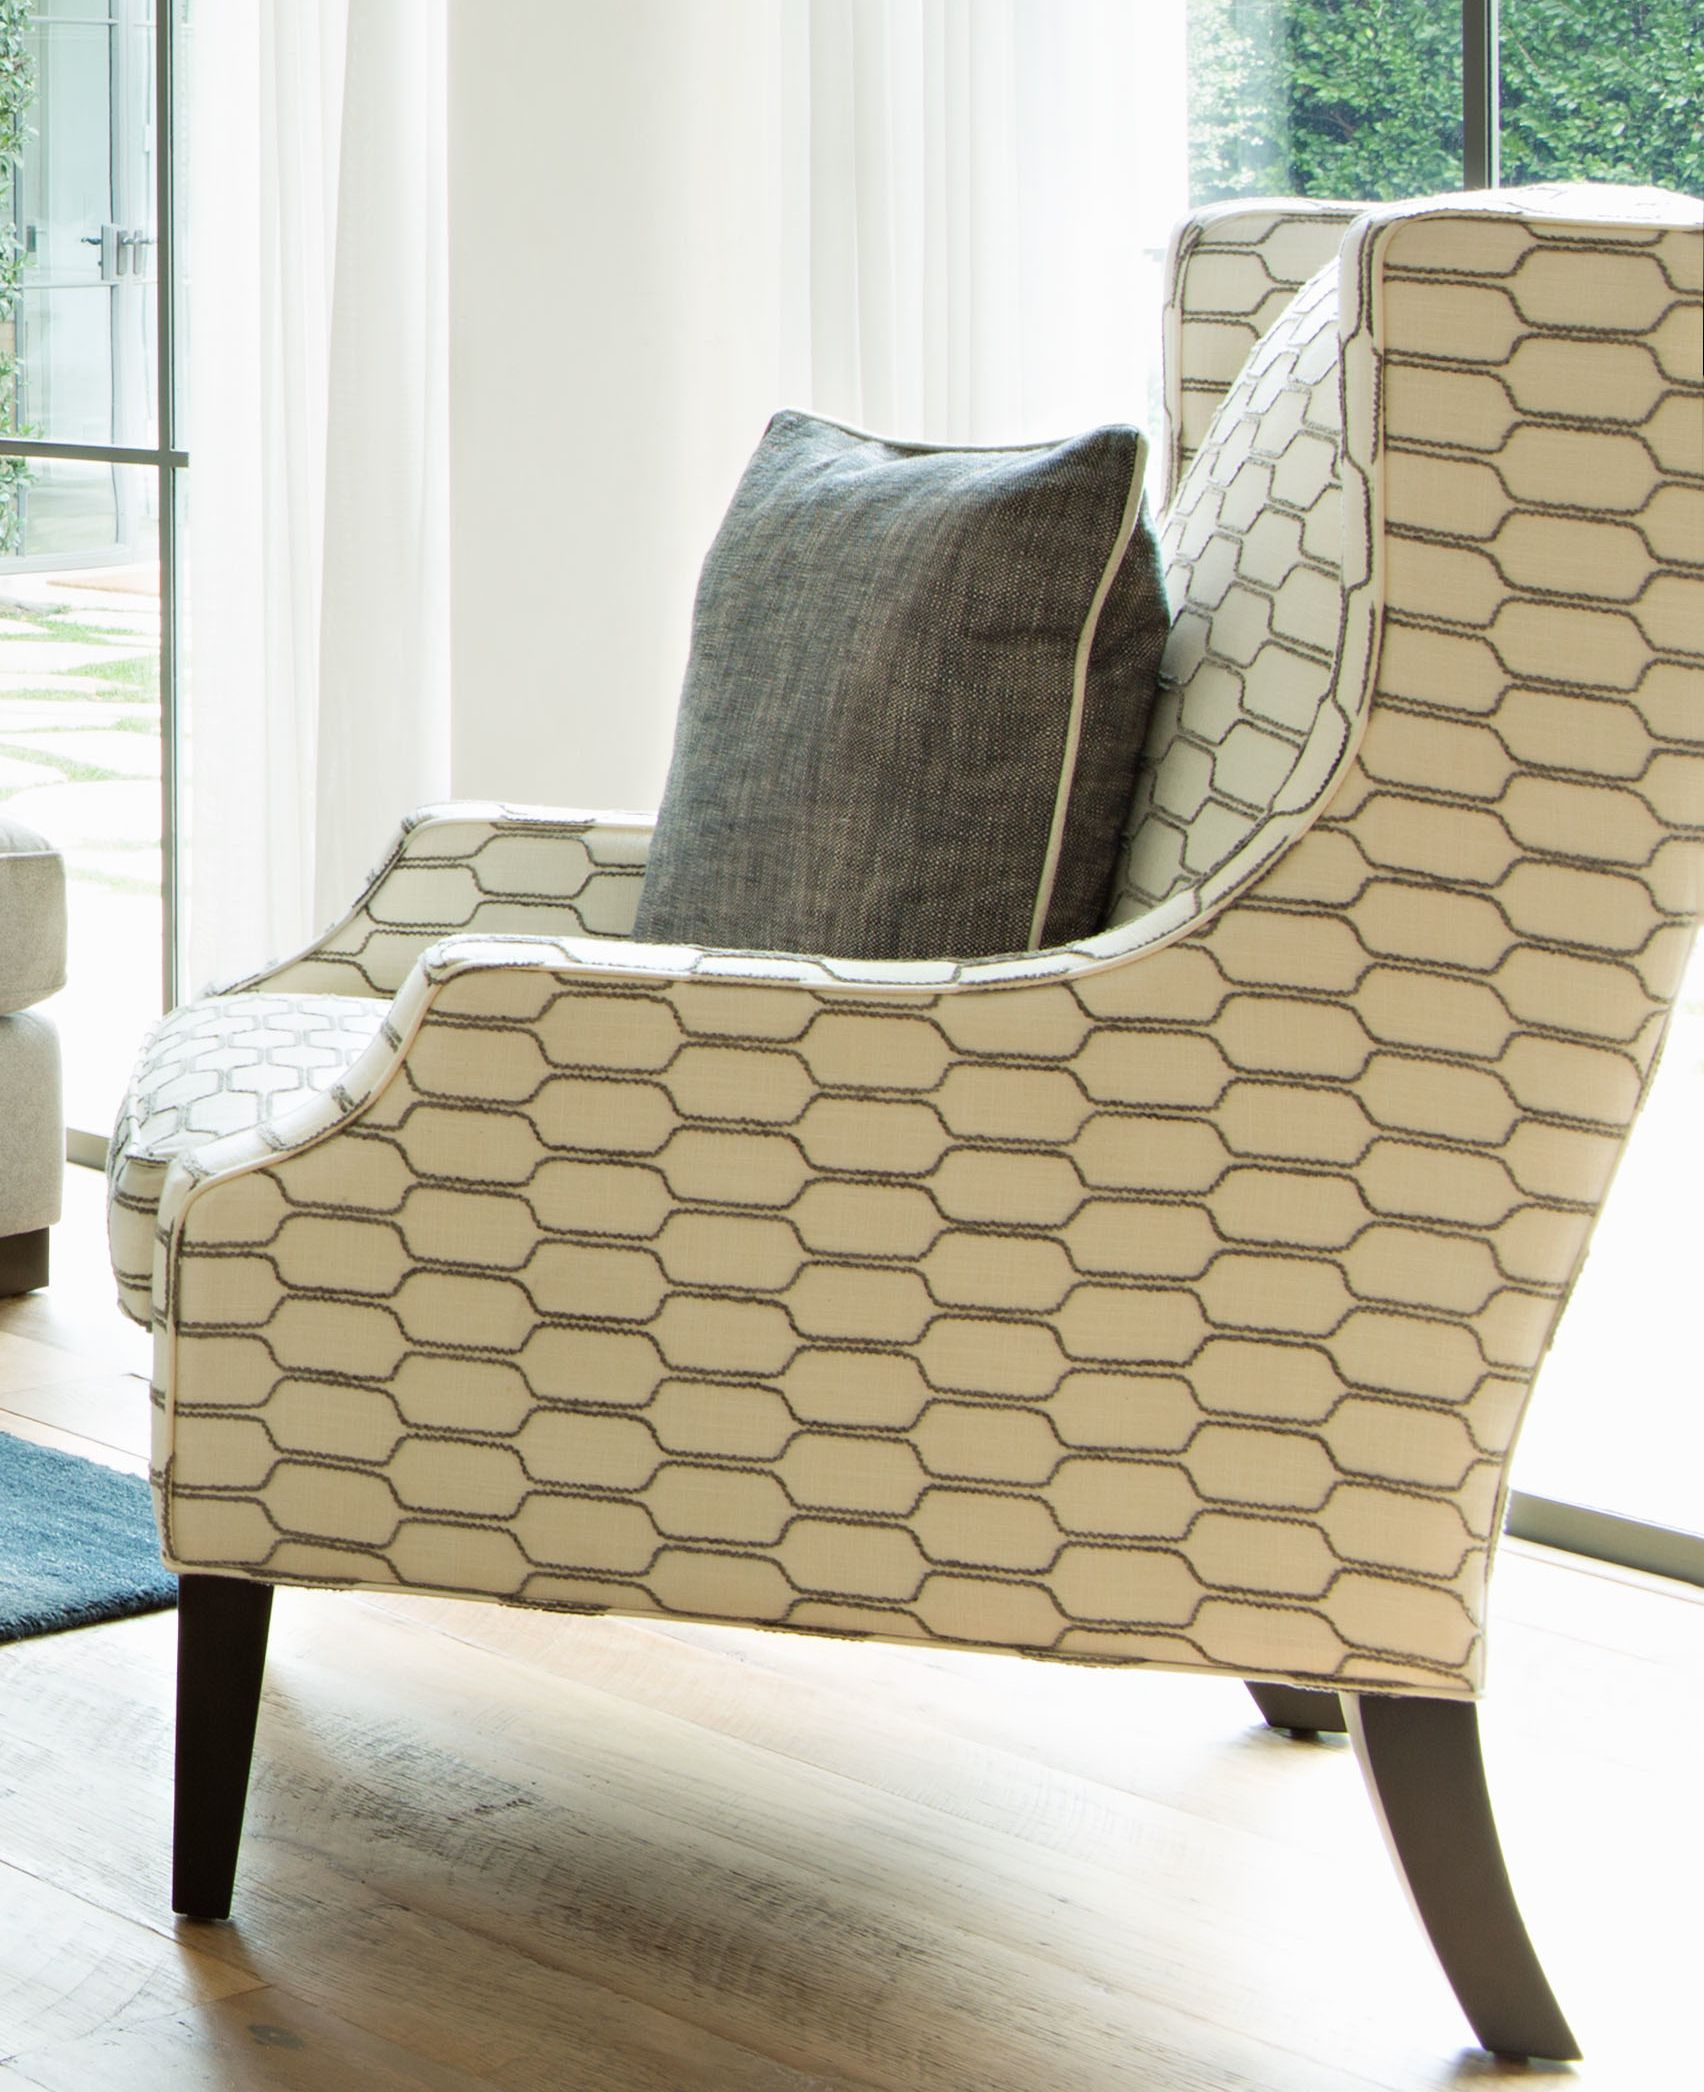 ... Classic, This Wingback Chair Fashionably Fuses Whatu0027s Fresh And Modern  With Whatu0027s Tasteful And Timeless. The Seatu0027s Stately Silhouette Is  Upholstered ... Great Pictures